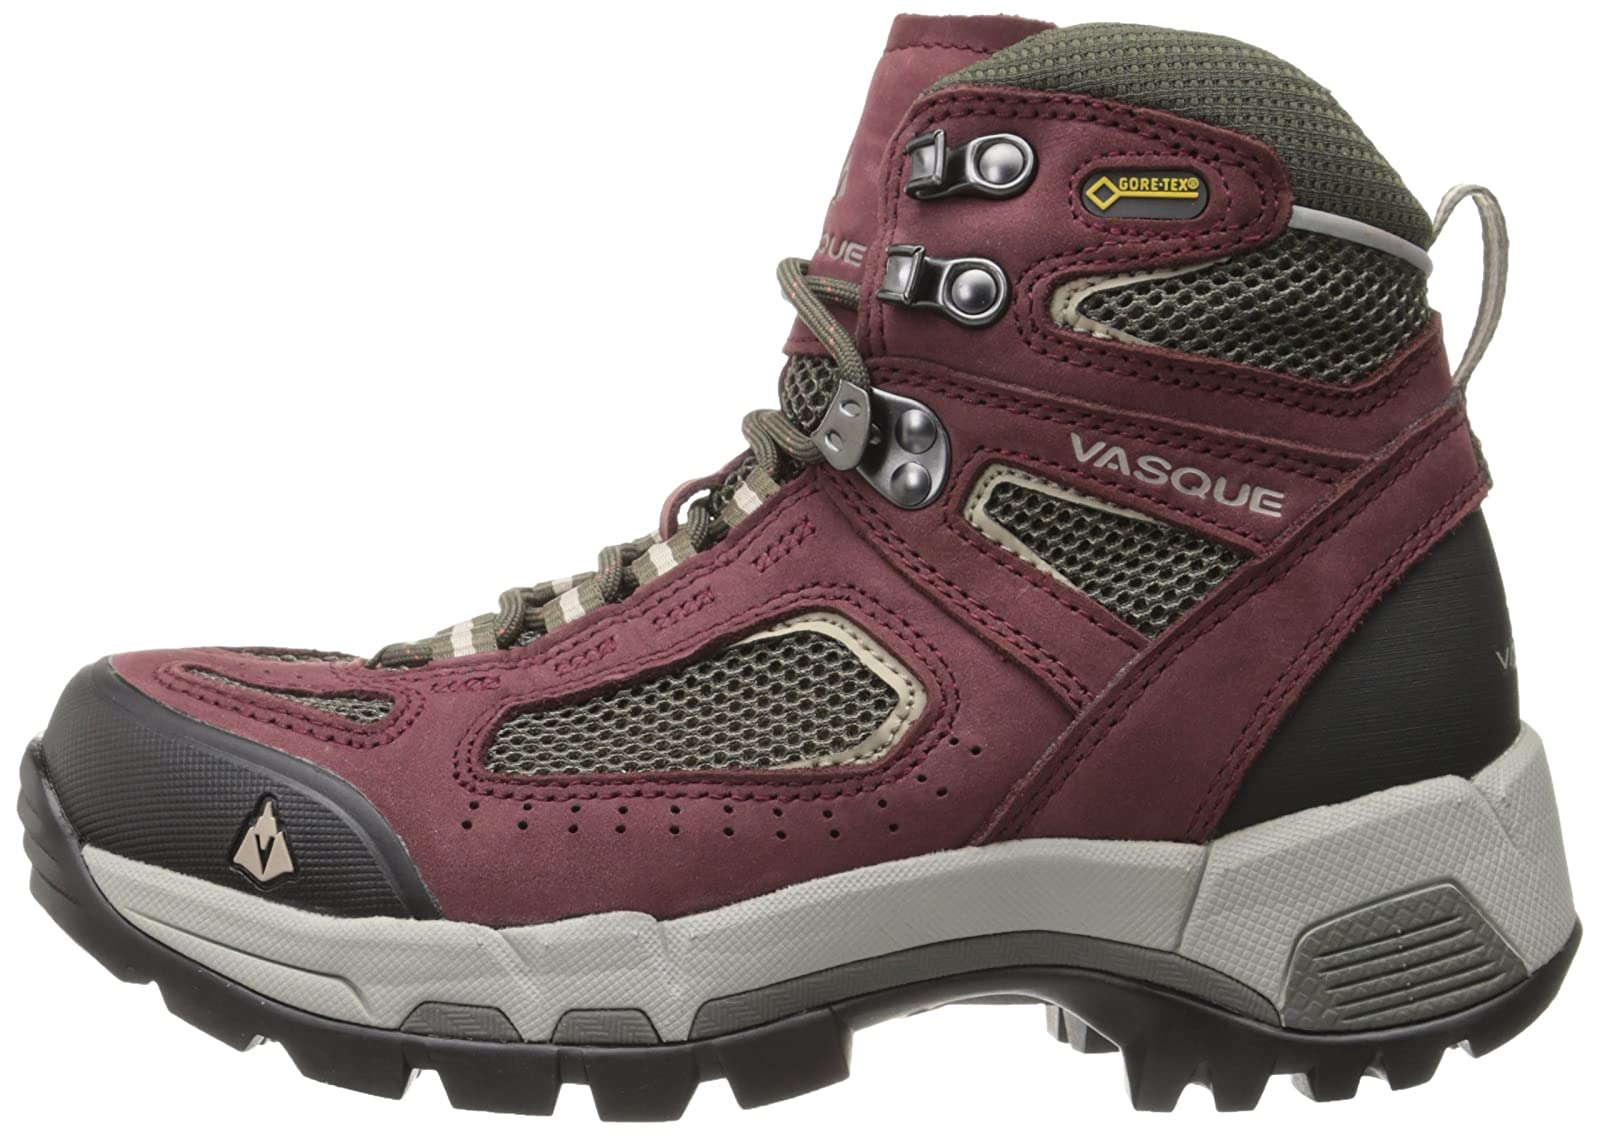 Vasque Women's Breeze 2.0 Gore-Tex Hiking Boot Little Kid US - 5